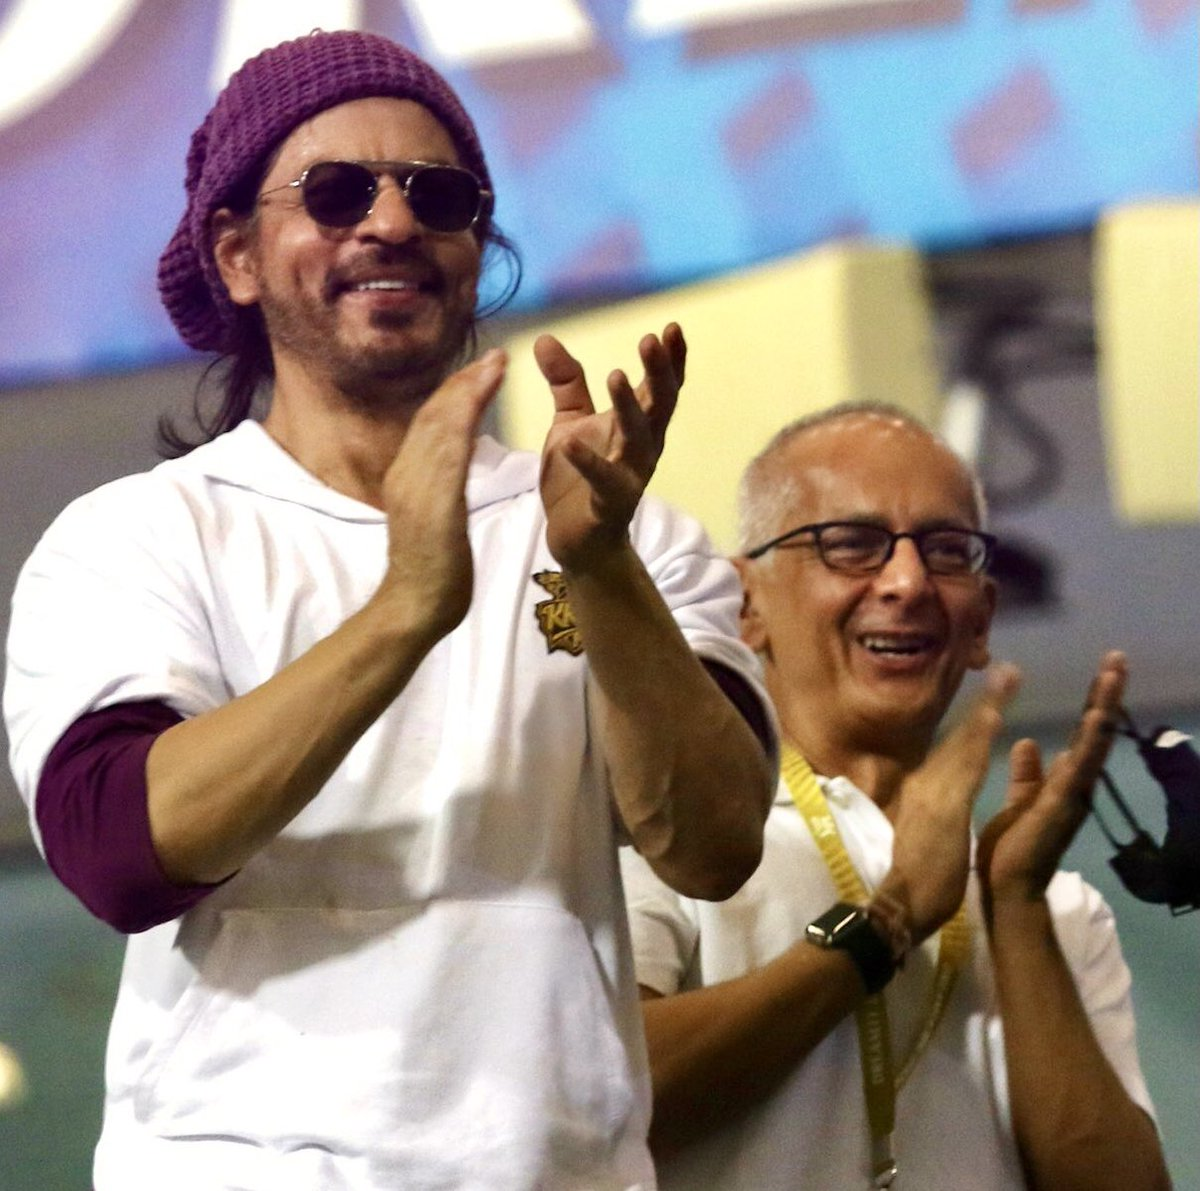 @iamsrk You are a true and devoted friend, and MOST affable. #HappyBirthdayJayMehta  And to you dear heart, lots of hugs and a big thank you for the lovely tweet, happiness unbound!! I love you, God bless you with happy days, always & forever🤗